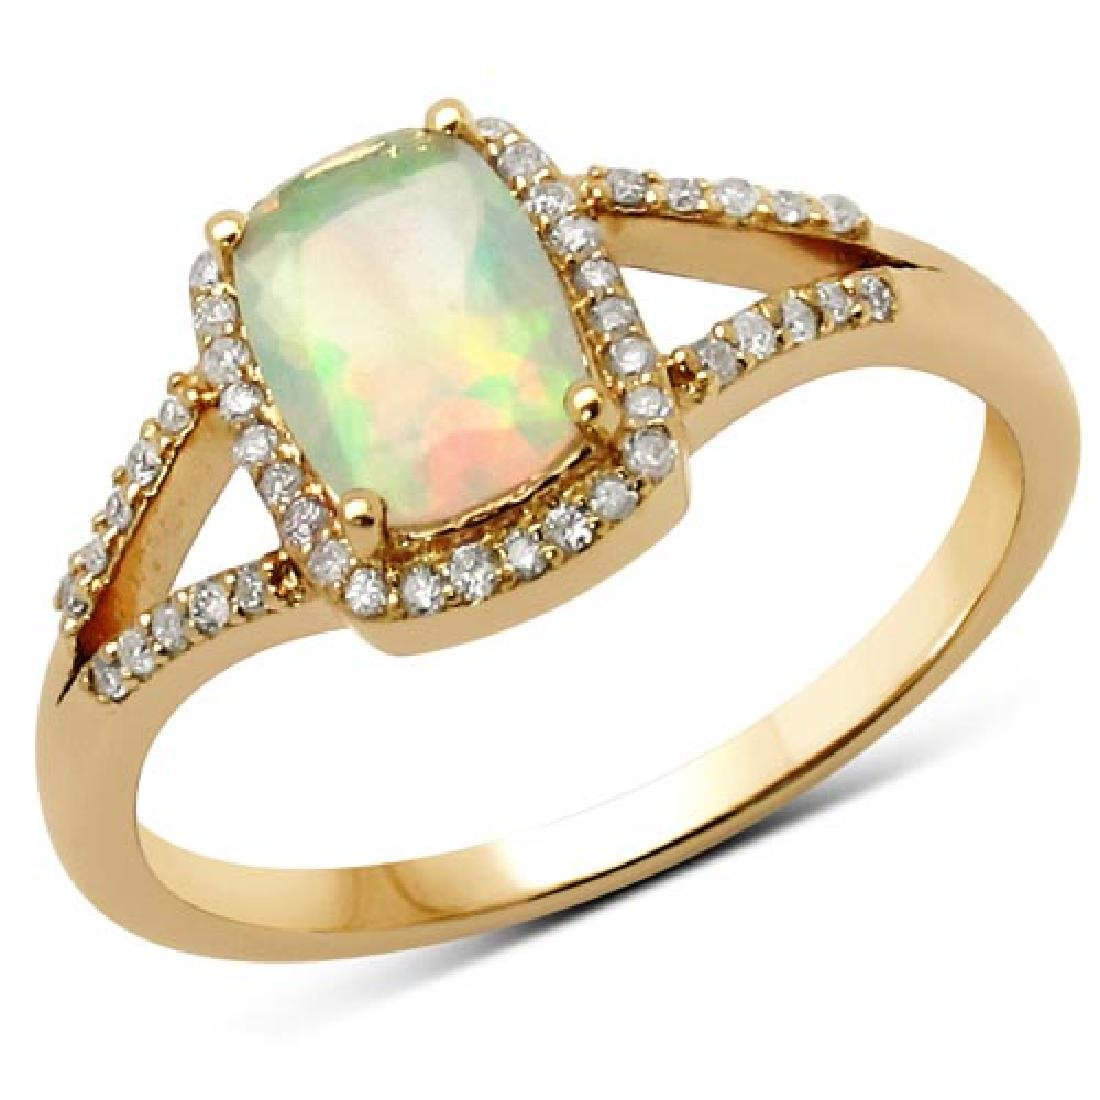 0.54 Carat Genuine Ethiopian Opal and White Diamond 14K